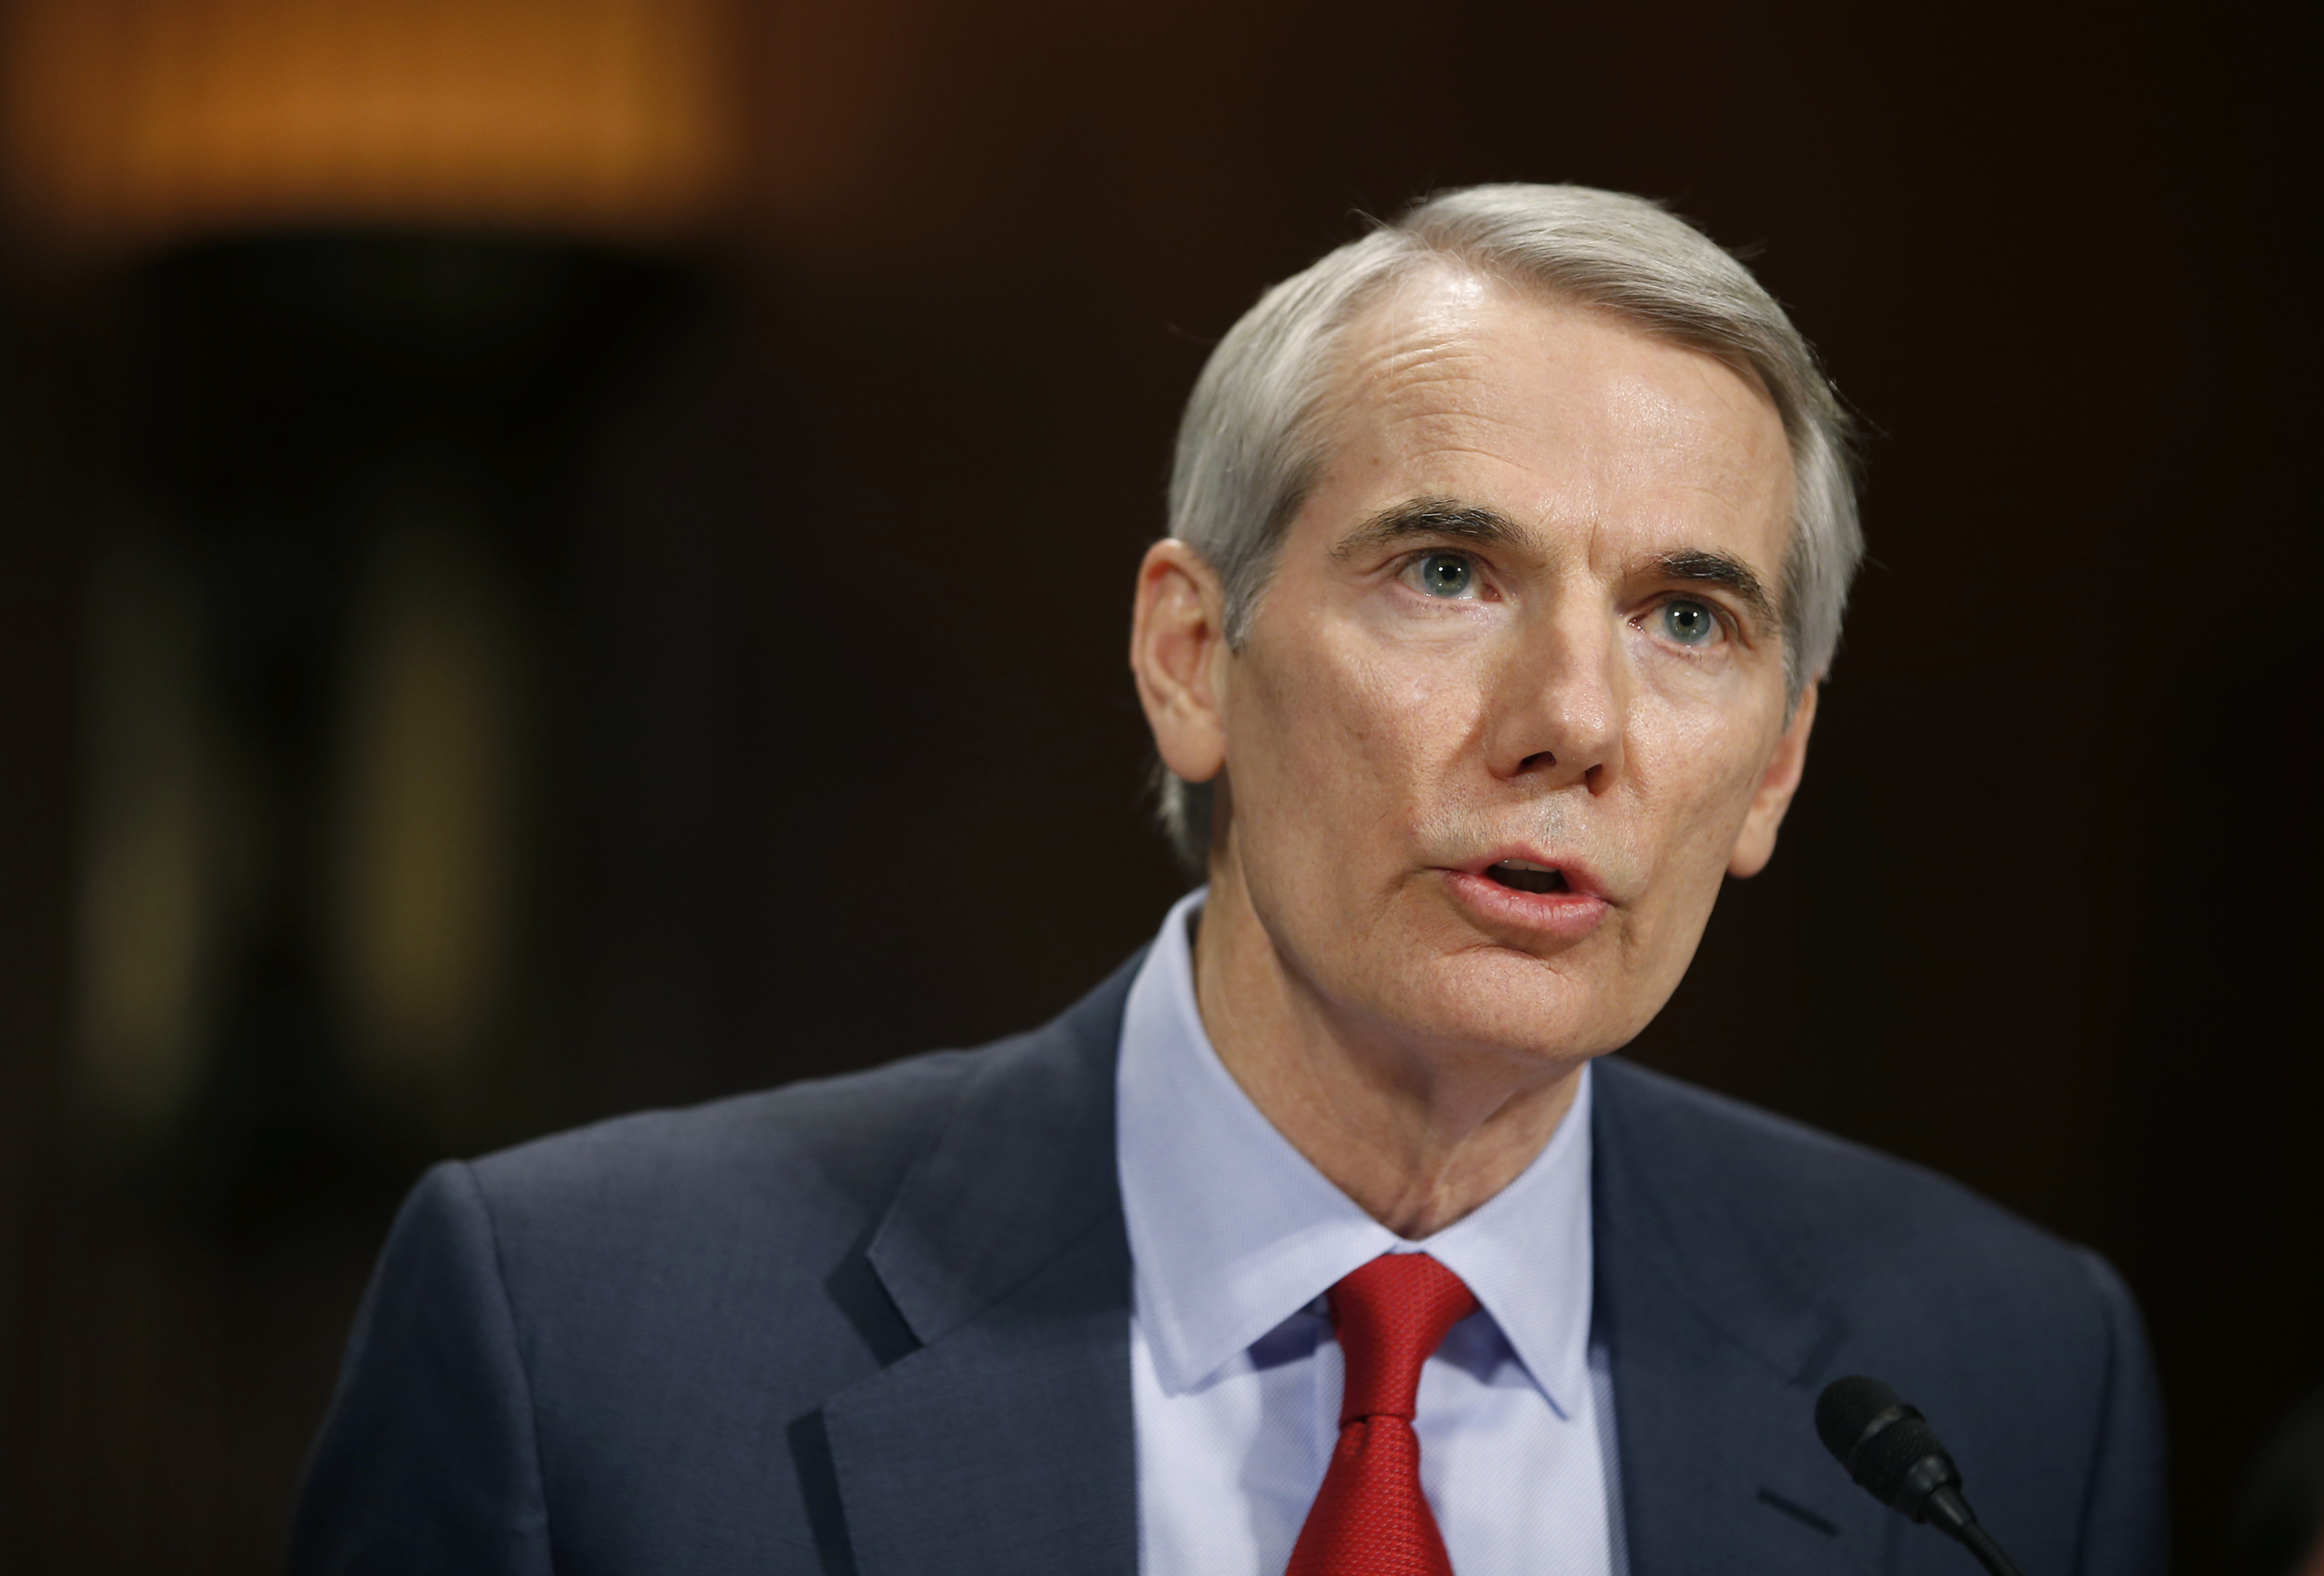 Image: Portman testifies during a Senate Judiciary Committee hearing on attacking America's epidemic of heroin